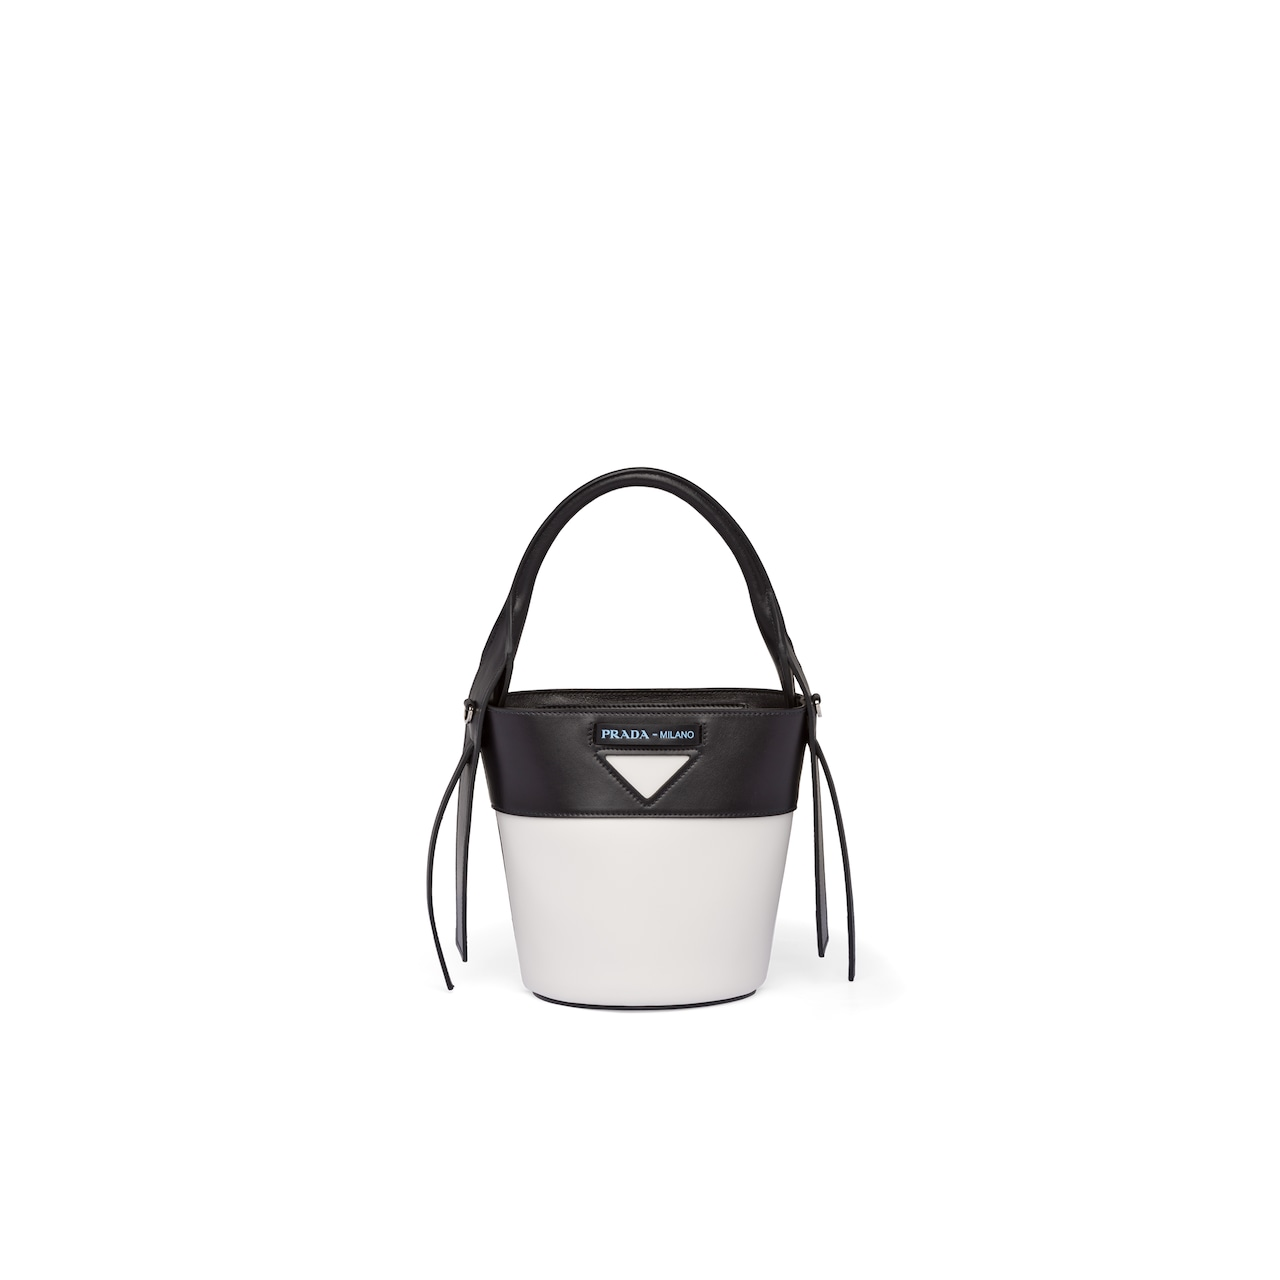 Prada Ouverture leather bucket bag